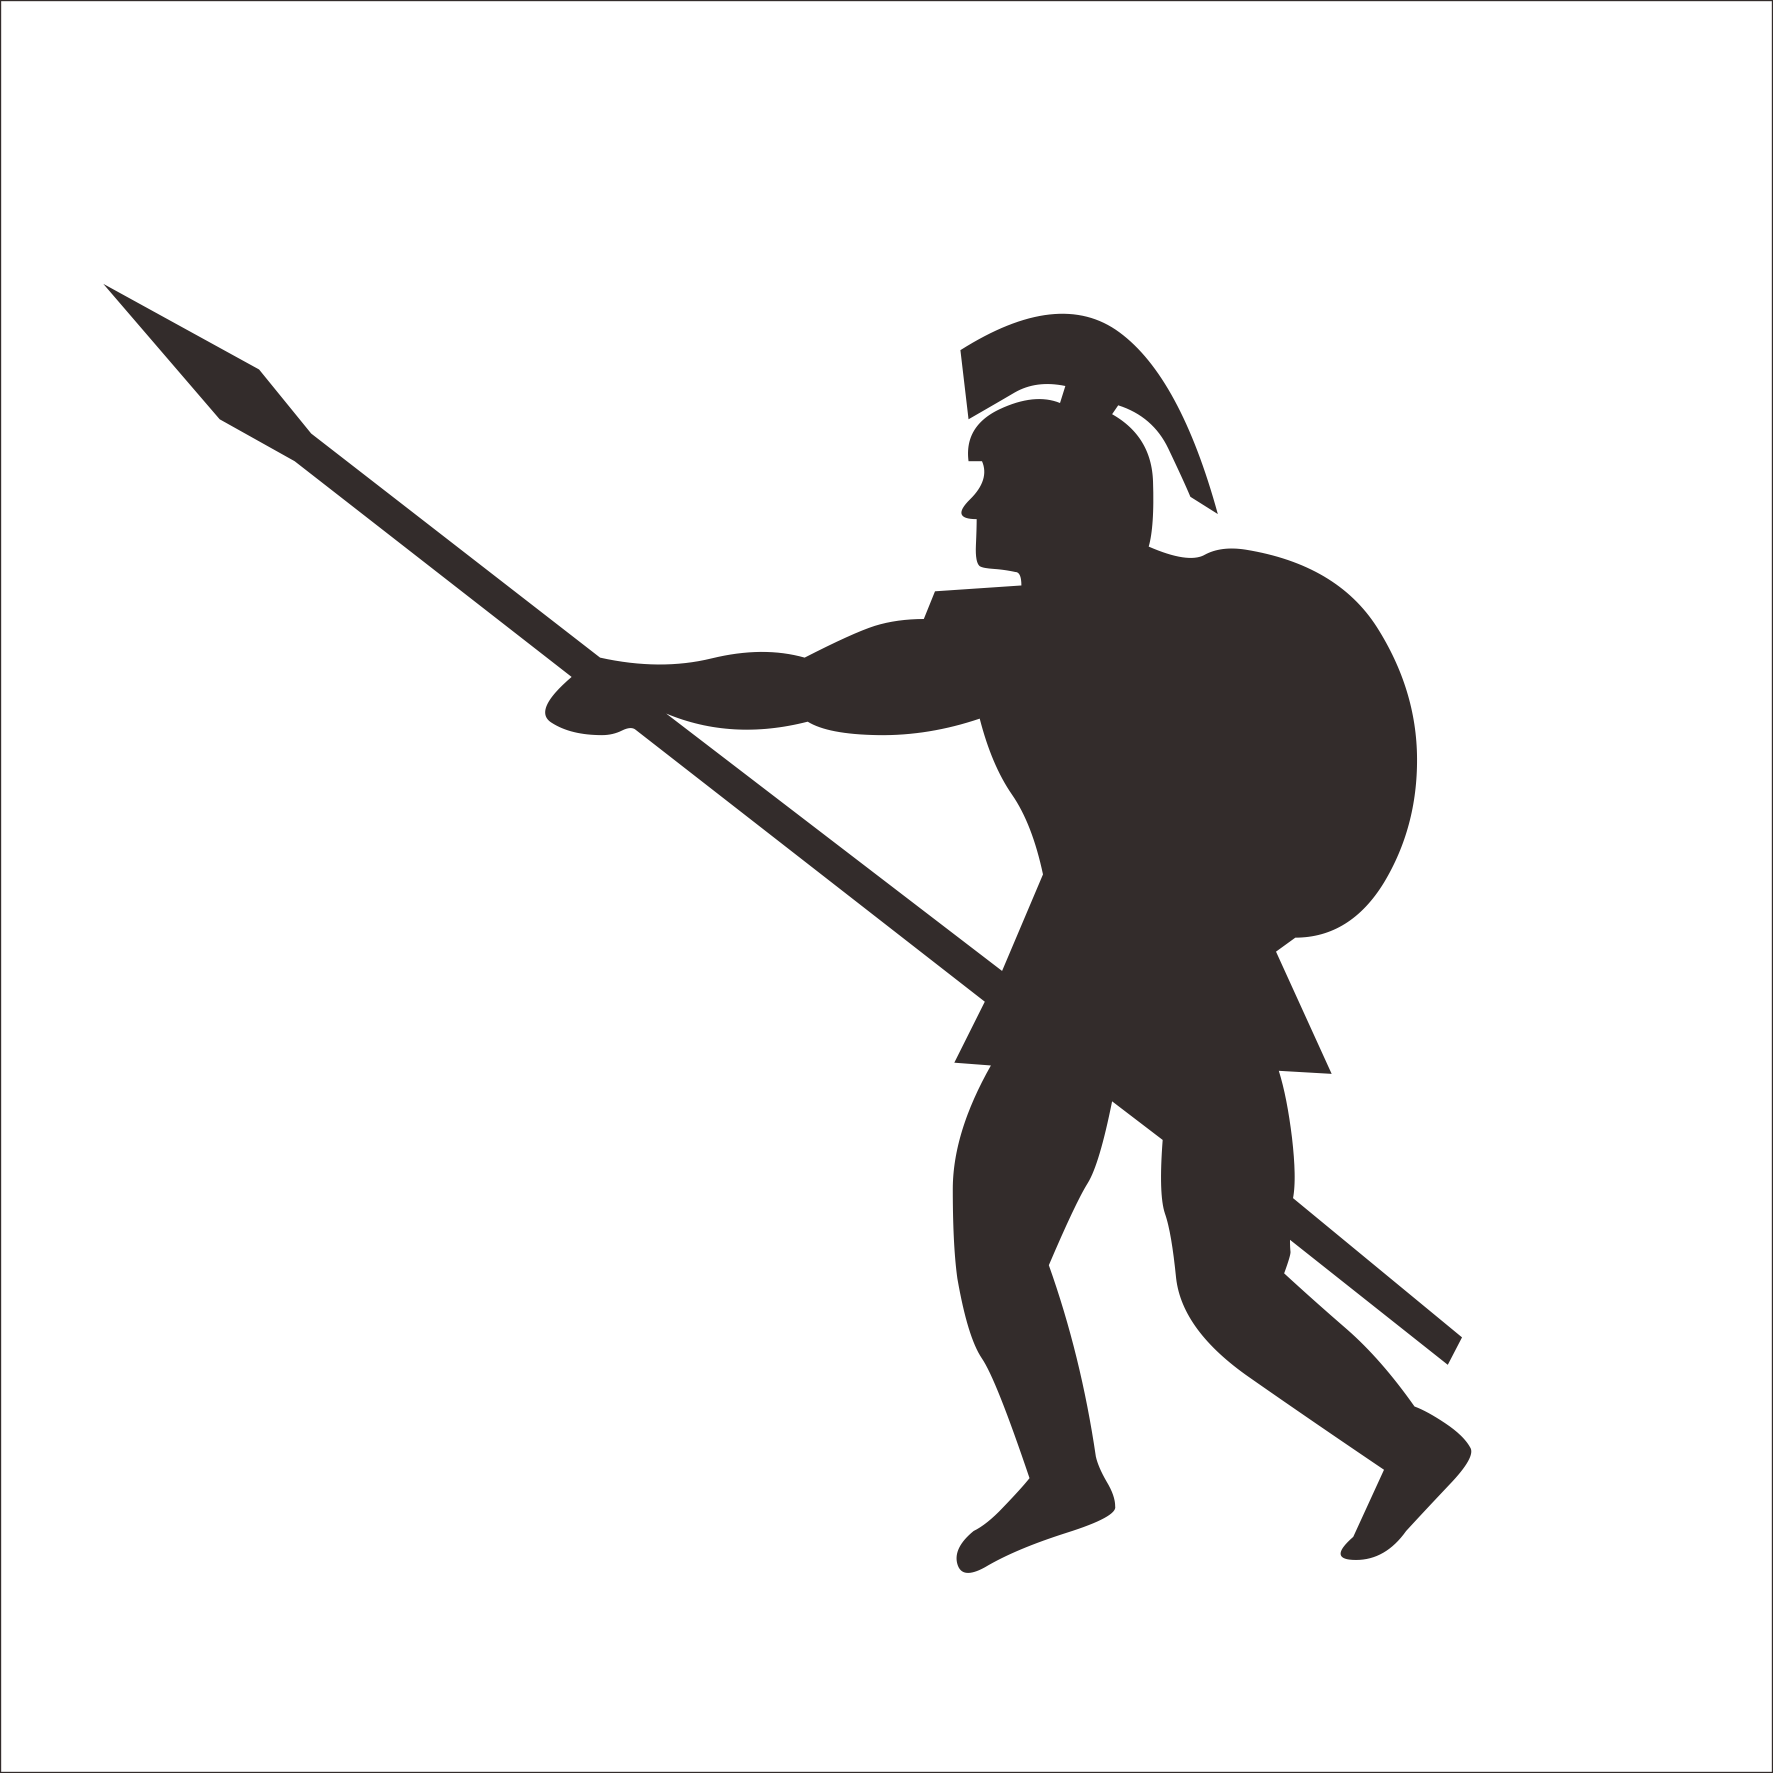 Baseball silhouette clipart png royalty free stock Ancient Rome Soldier Silhouette Clip art - Soldiers 1773*1773 ... png royalty free stock